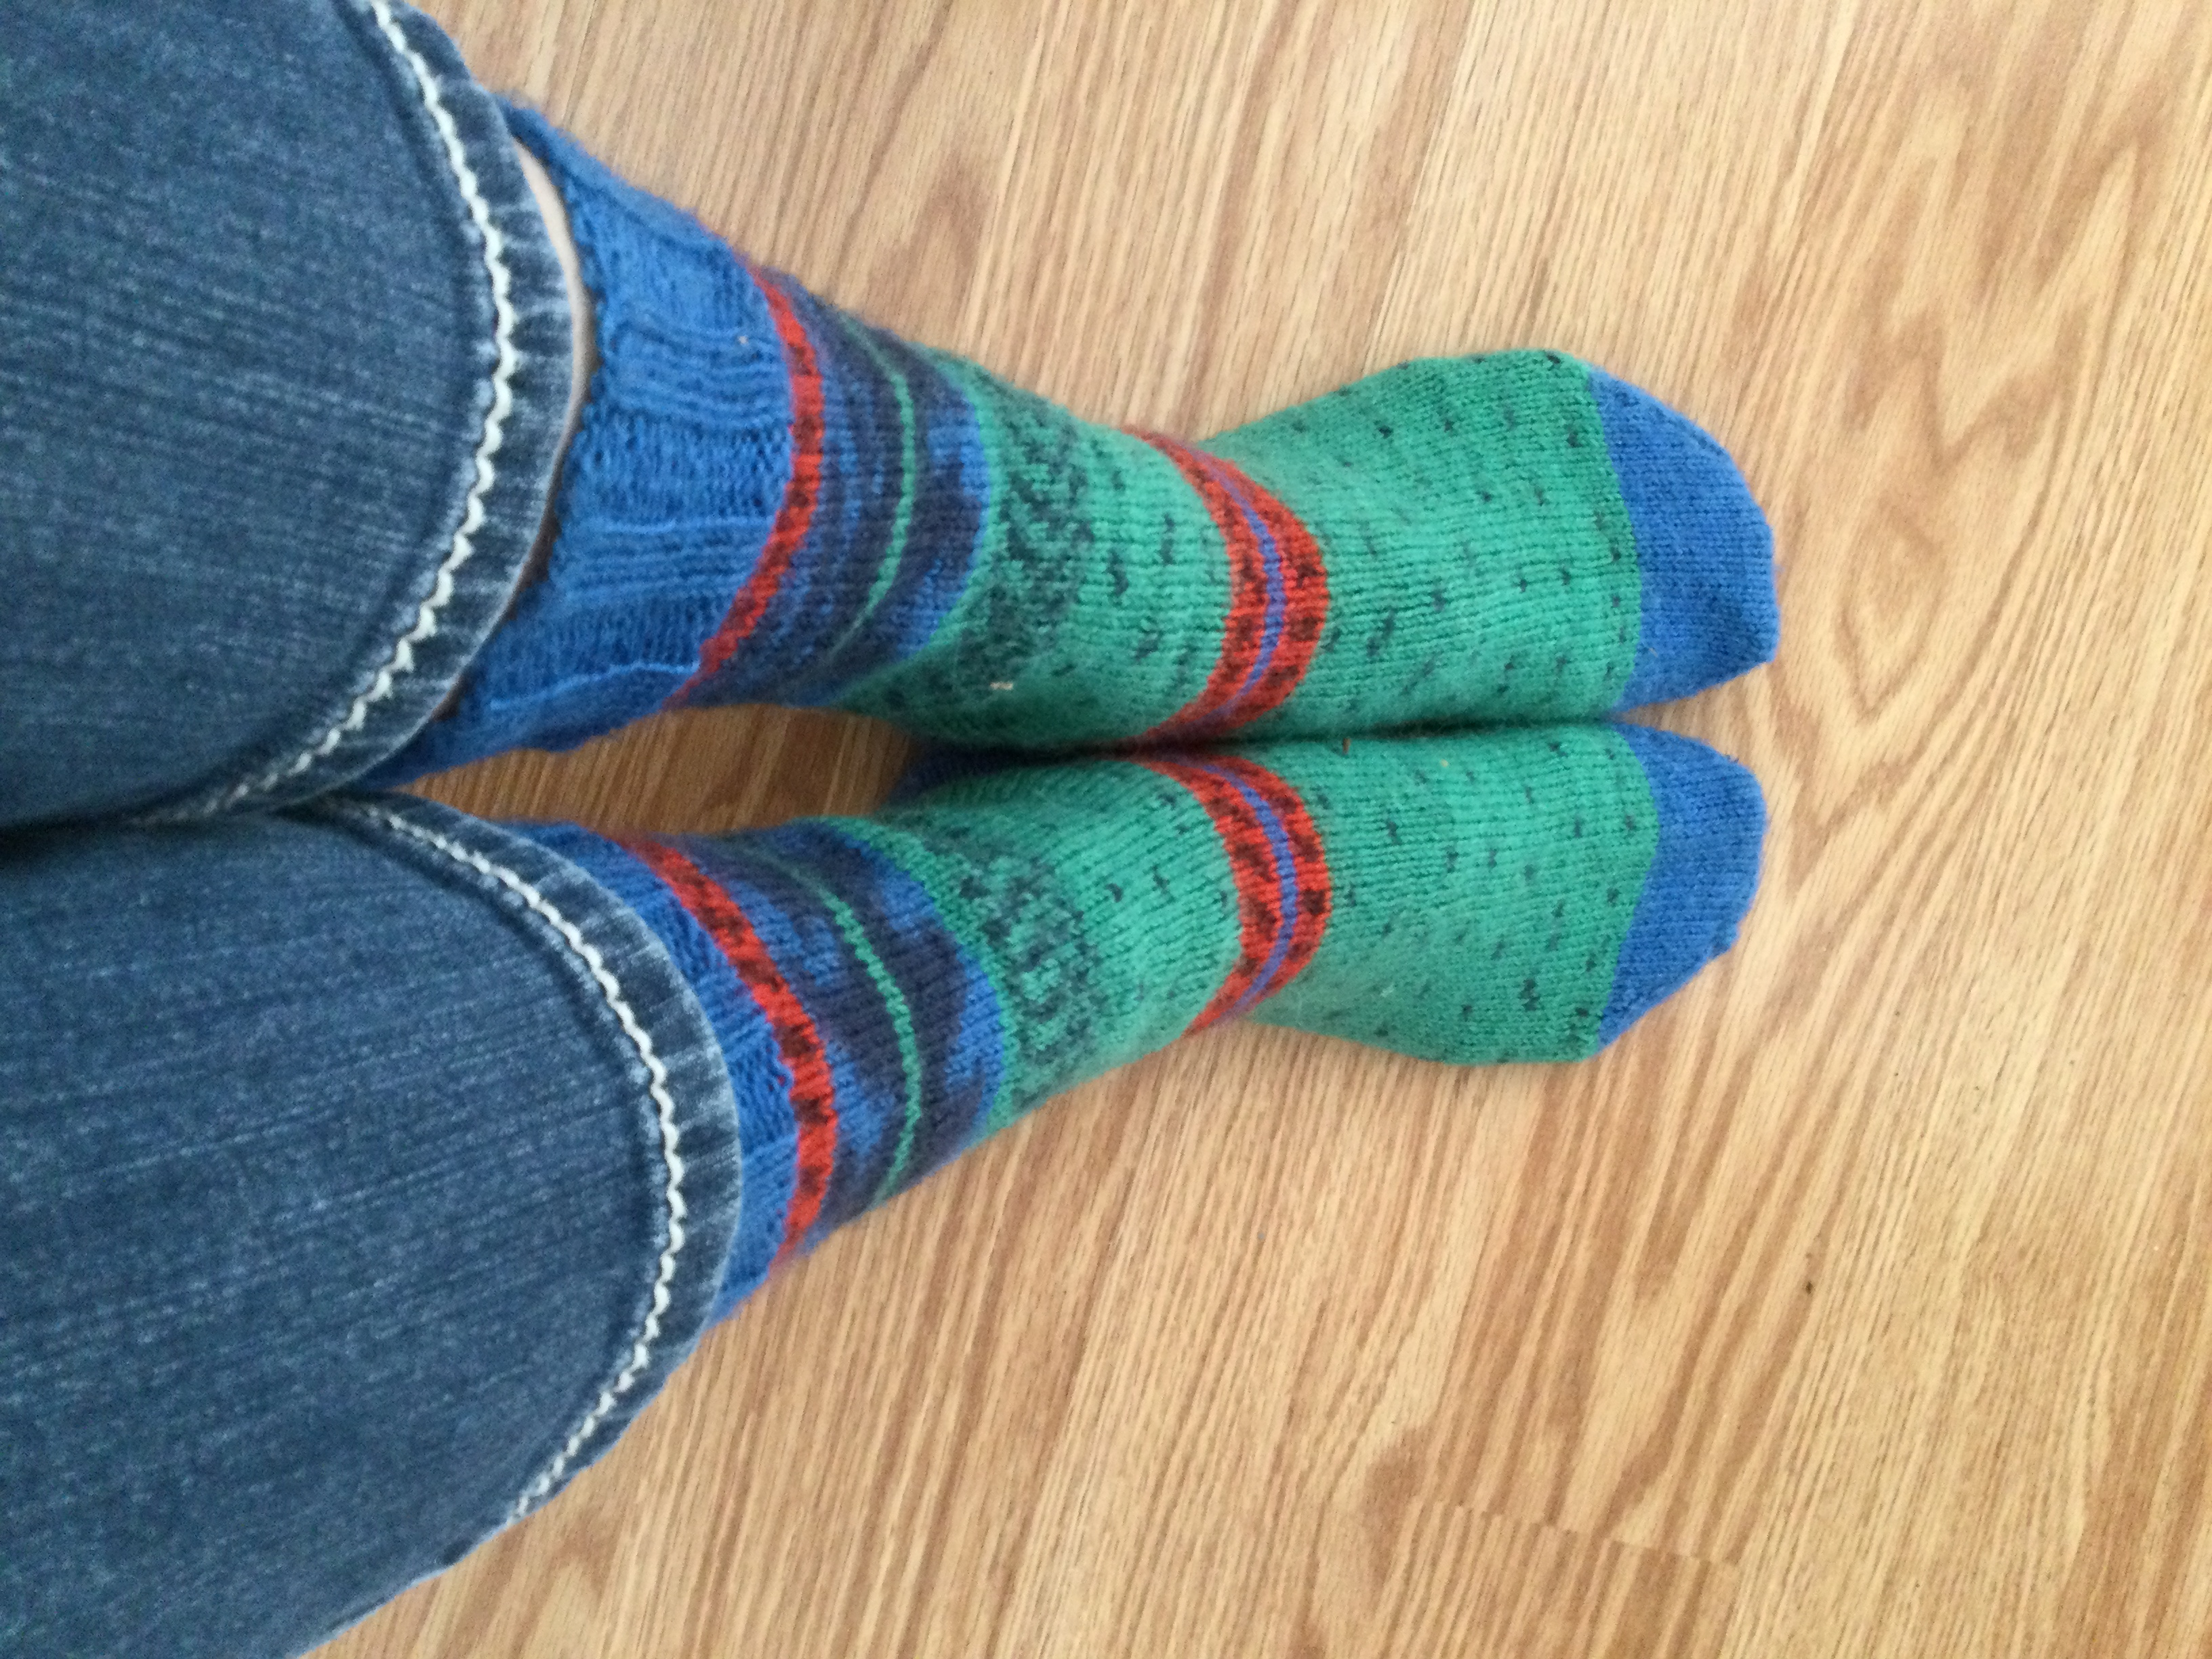 Shelley finished her amazing pair of socks.